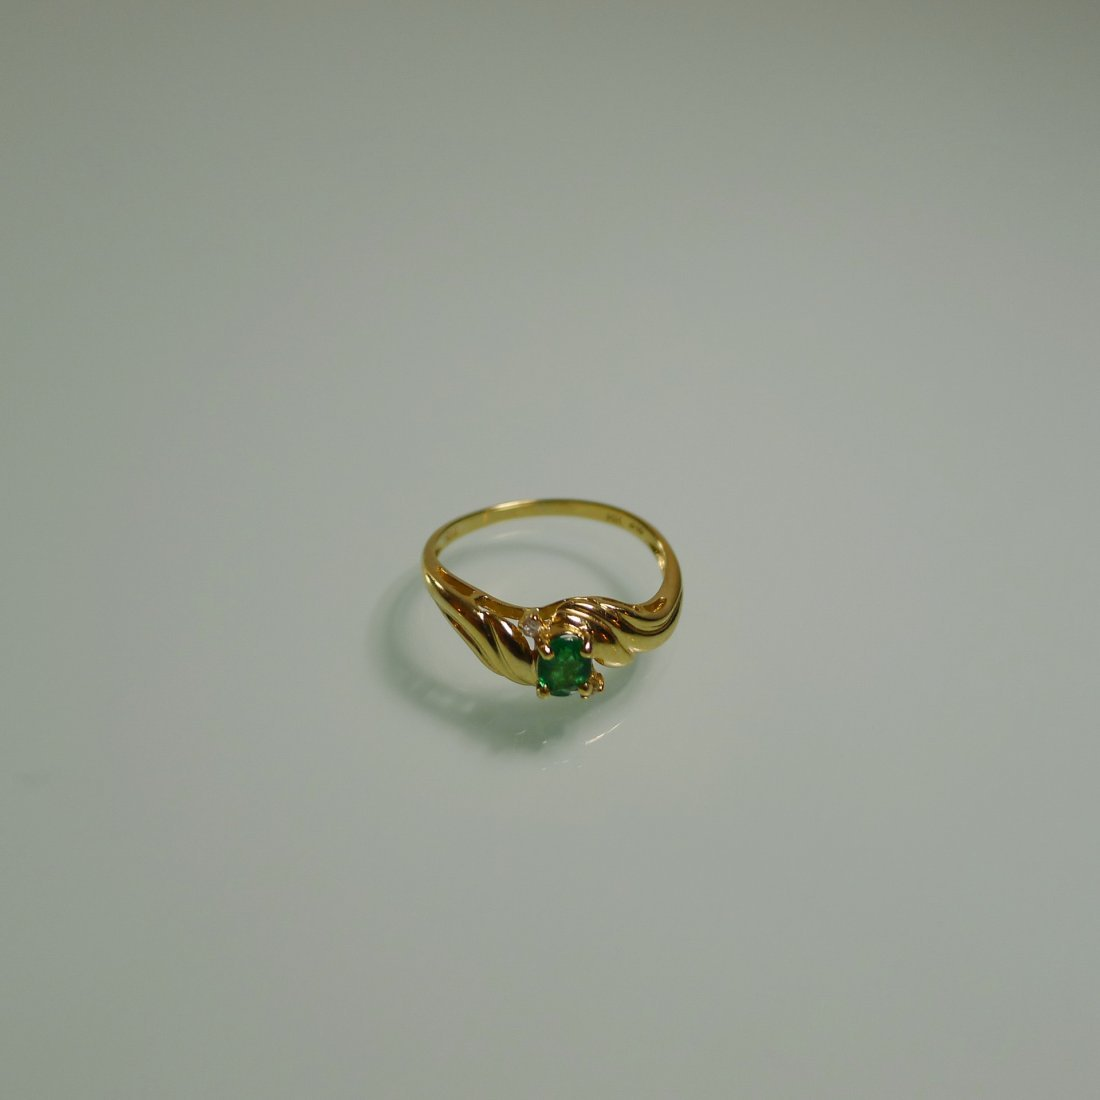 18K YELLOW GOLD NATURAL EMERALD RING - 2